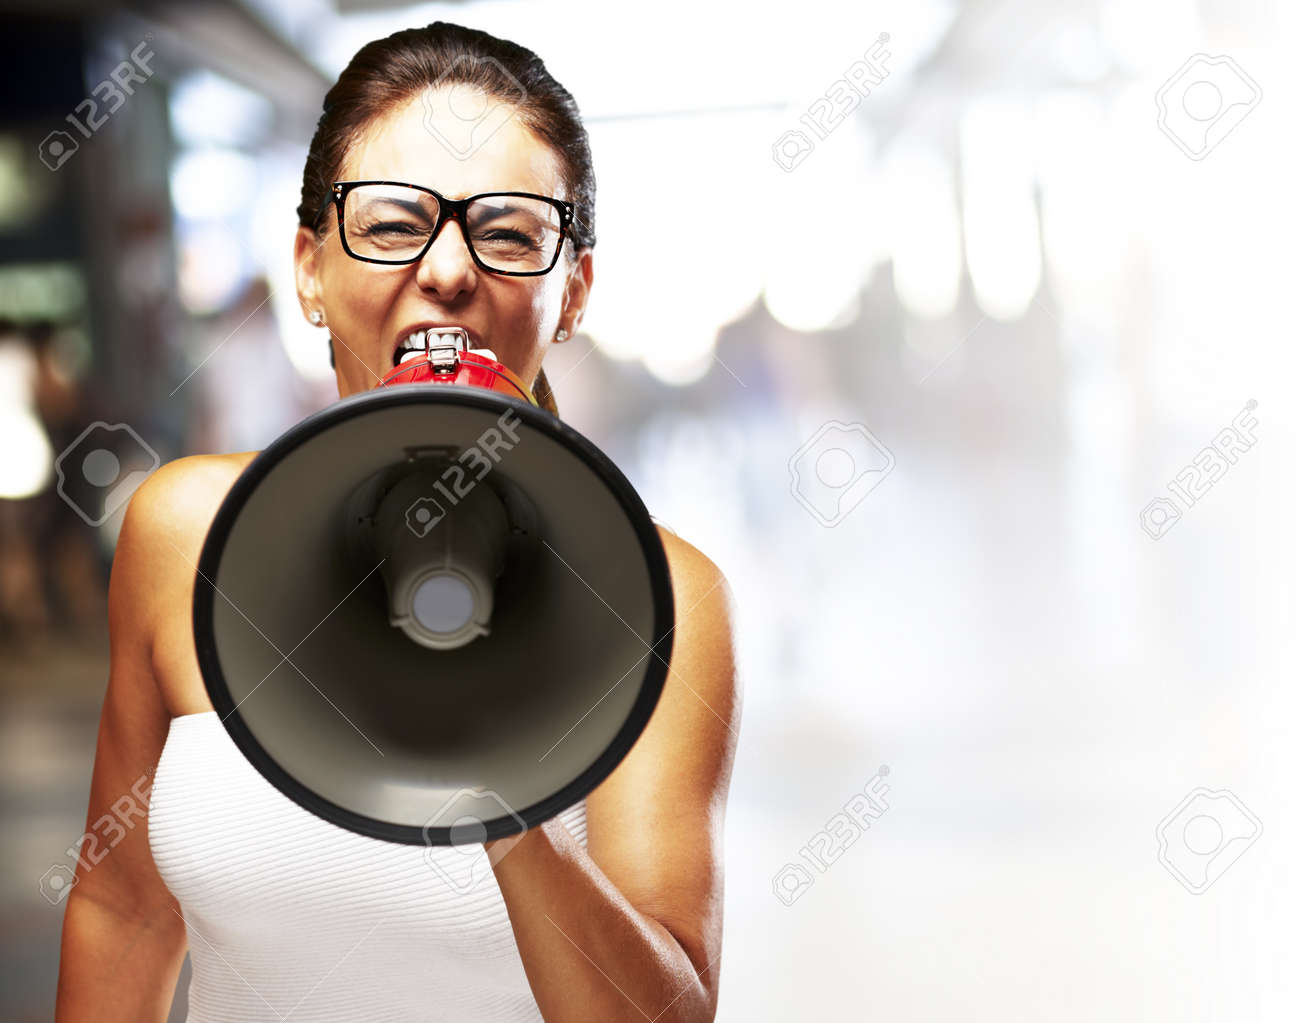 middle aged woman shouting with megaphone at a busy place Stock Photo - 12656679